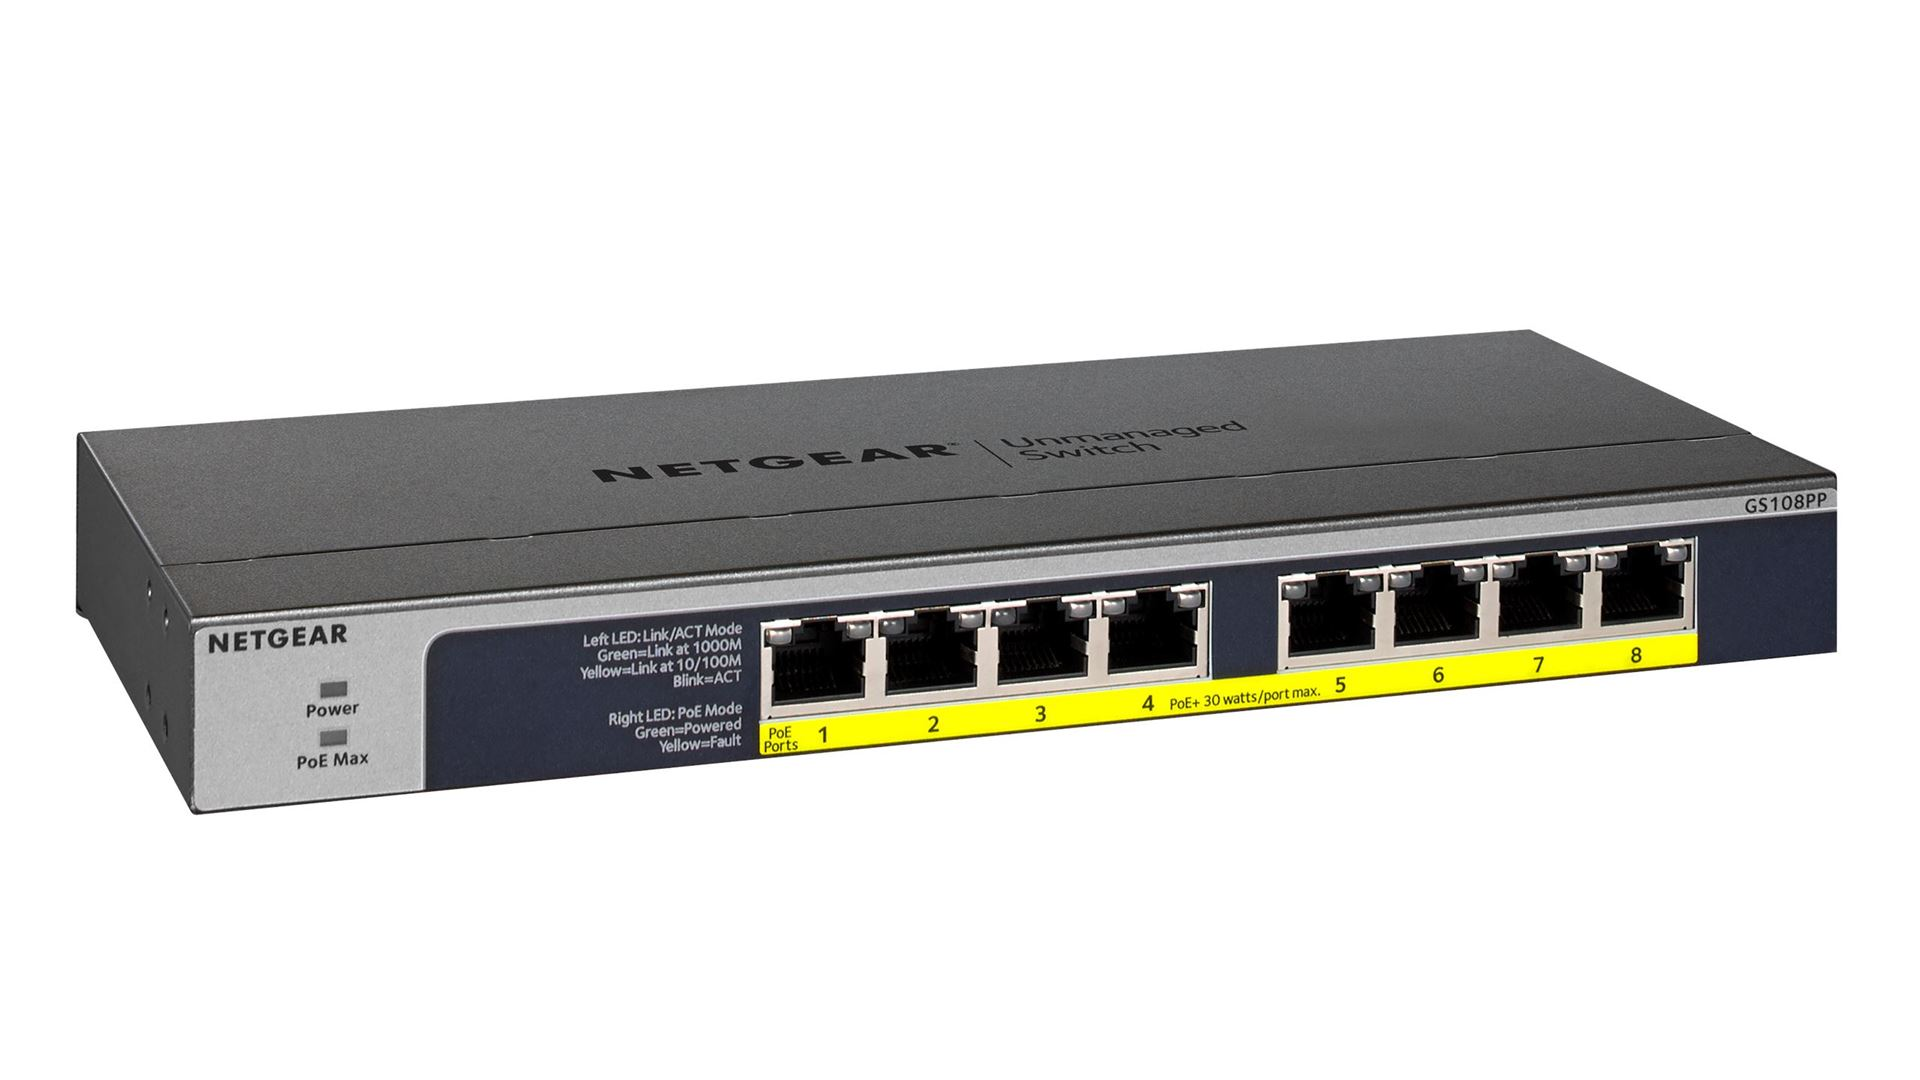 8-port Gigabit Ethernet Unmanaged High-Power FlexPoE PoE+ Switch with 8 PoE+ Ports (123W) - GS108PP - Right